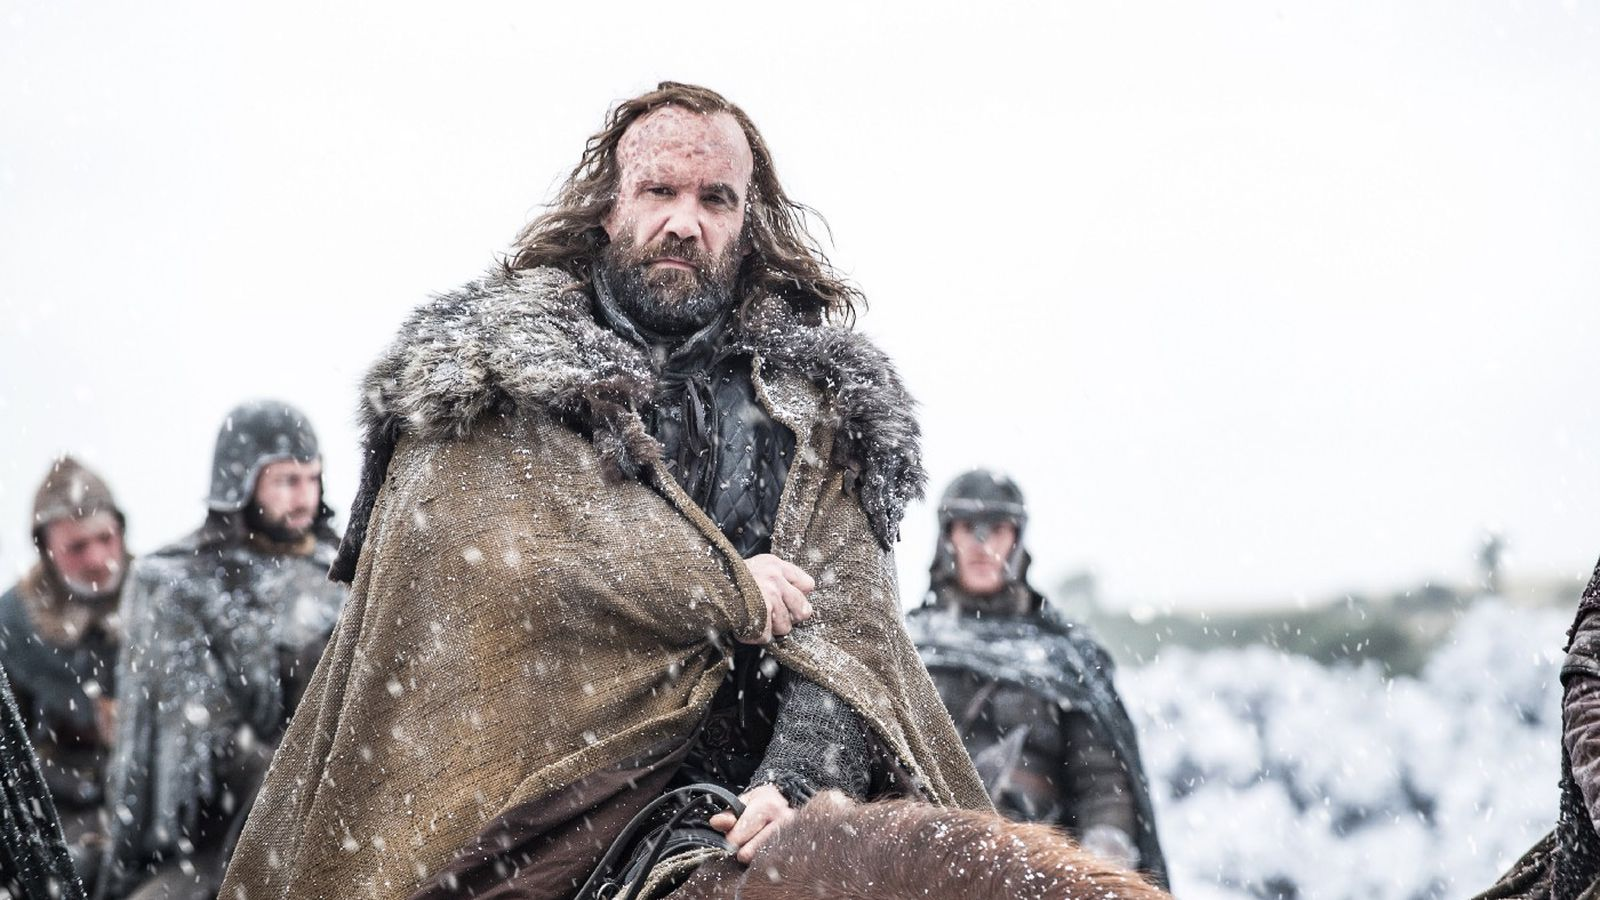 Game of Thrones just gave the Hound his most humane moment